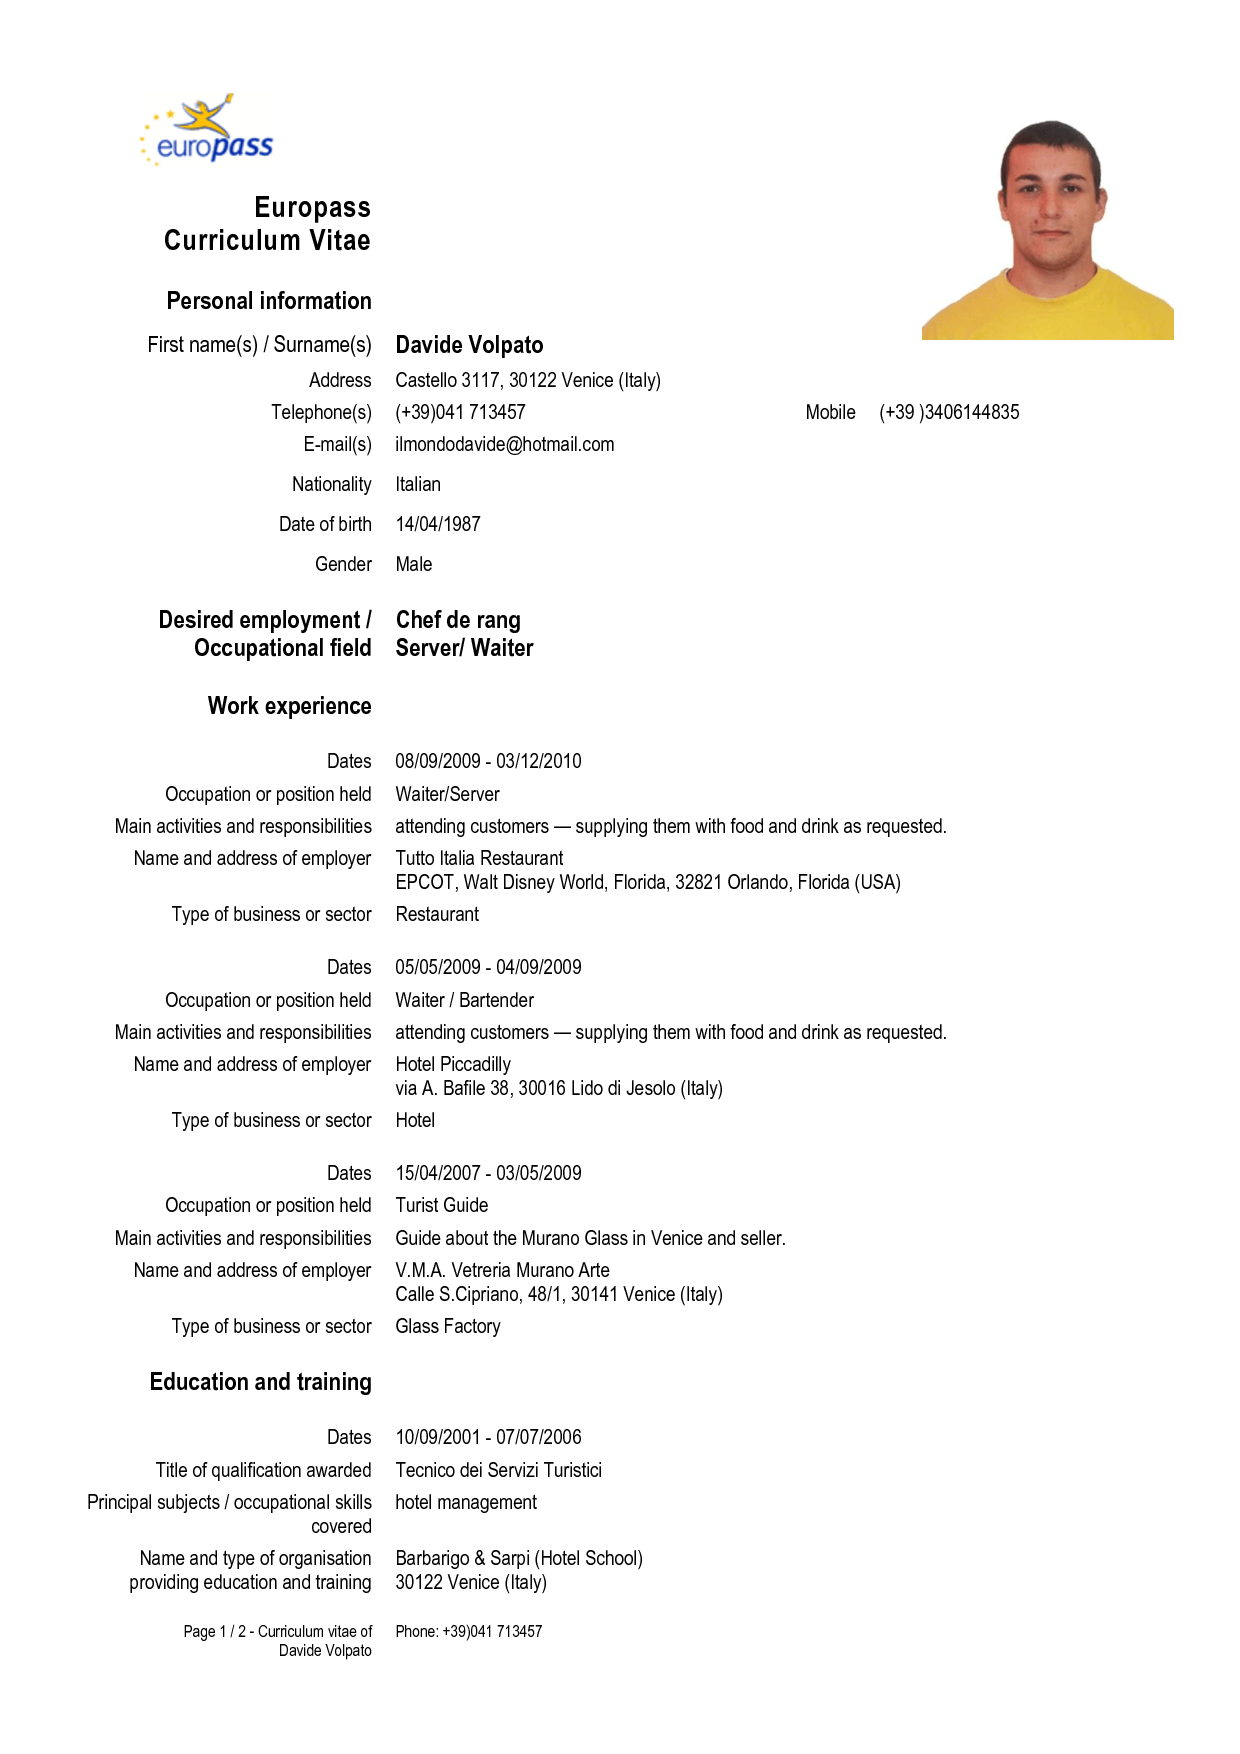 cv form in english download cv resume examples to download for free slideshare europass cv download - Free Cv Templates Word Uk